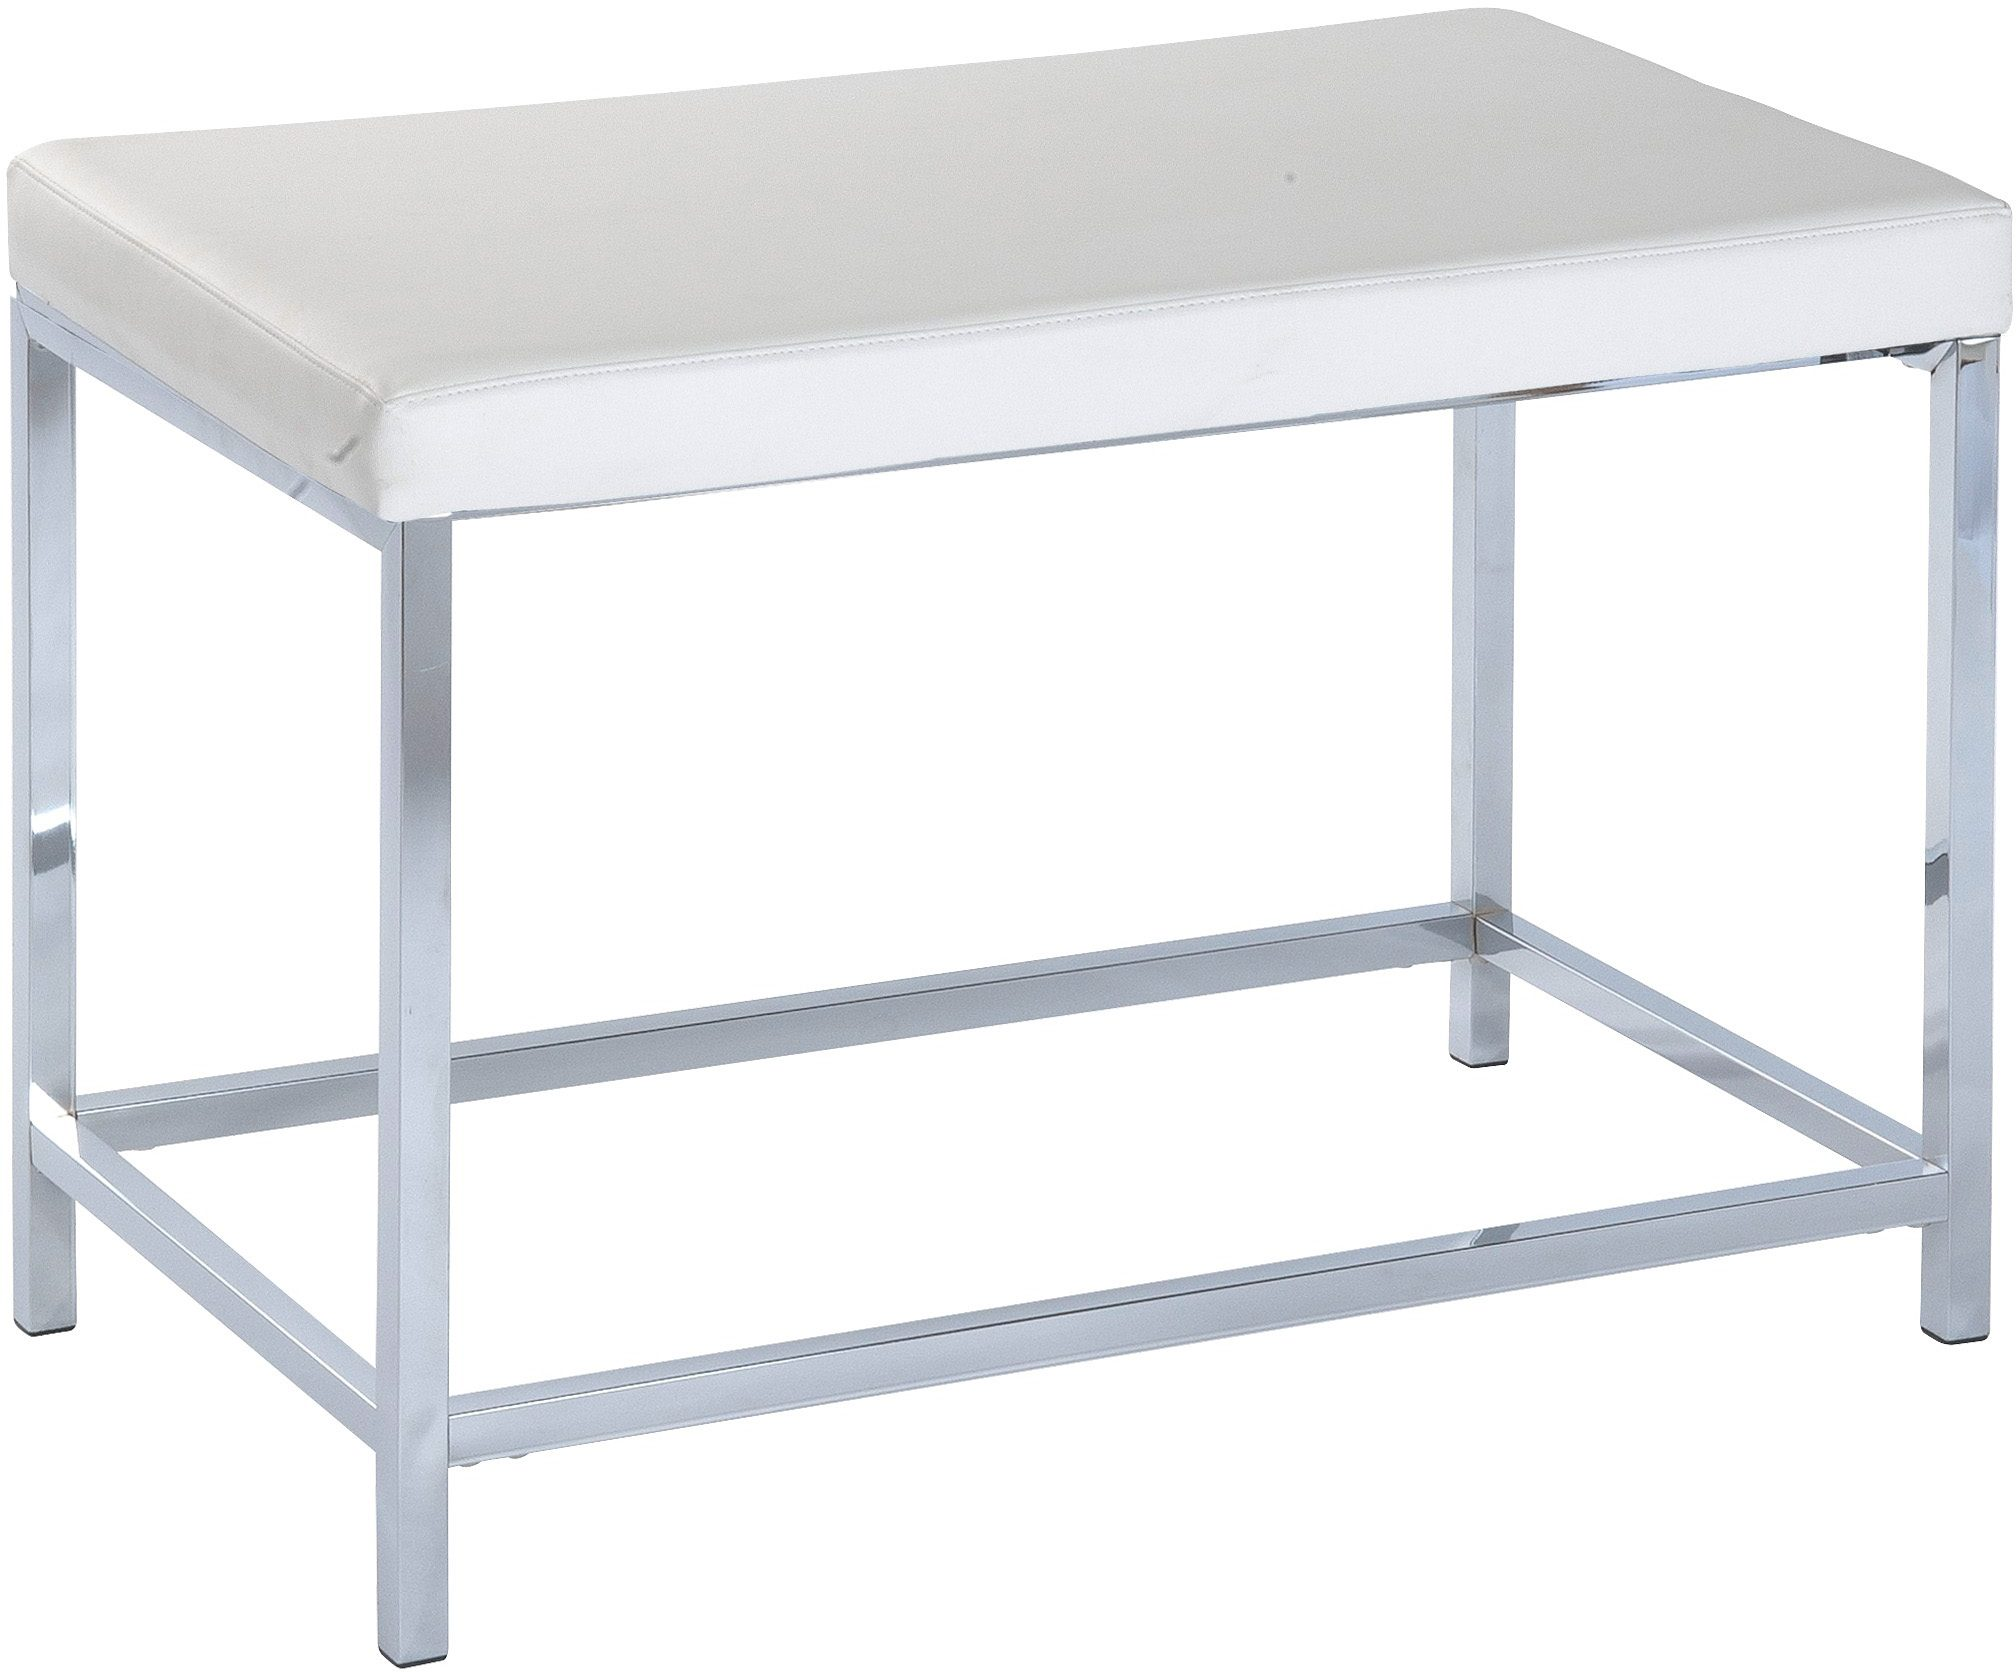 WENKO Hocker Deluxe Long White, Badhocker